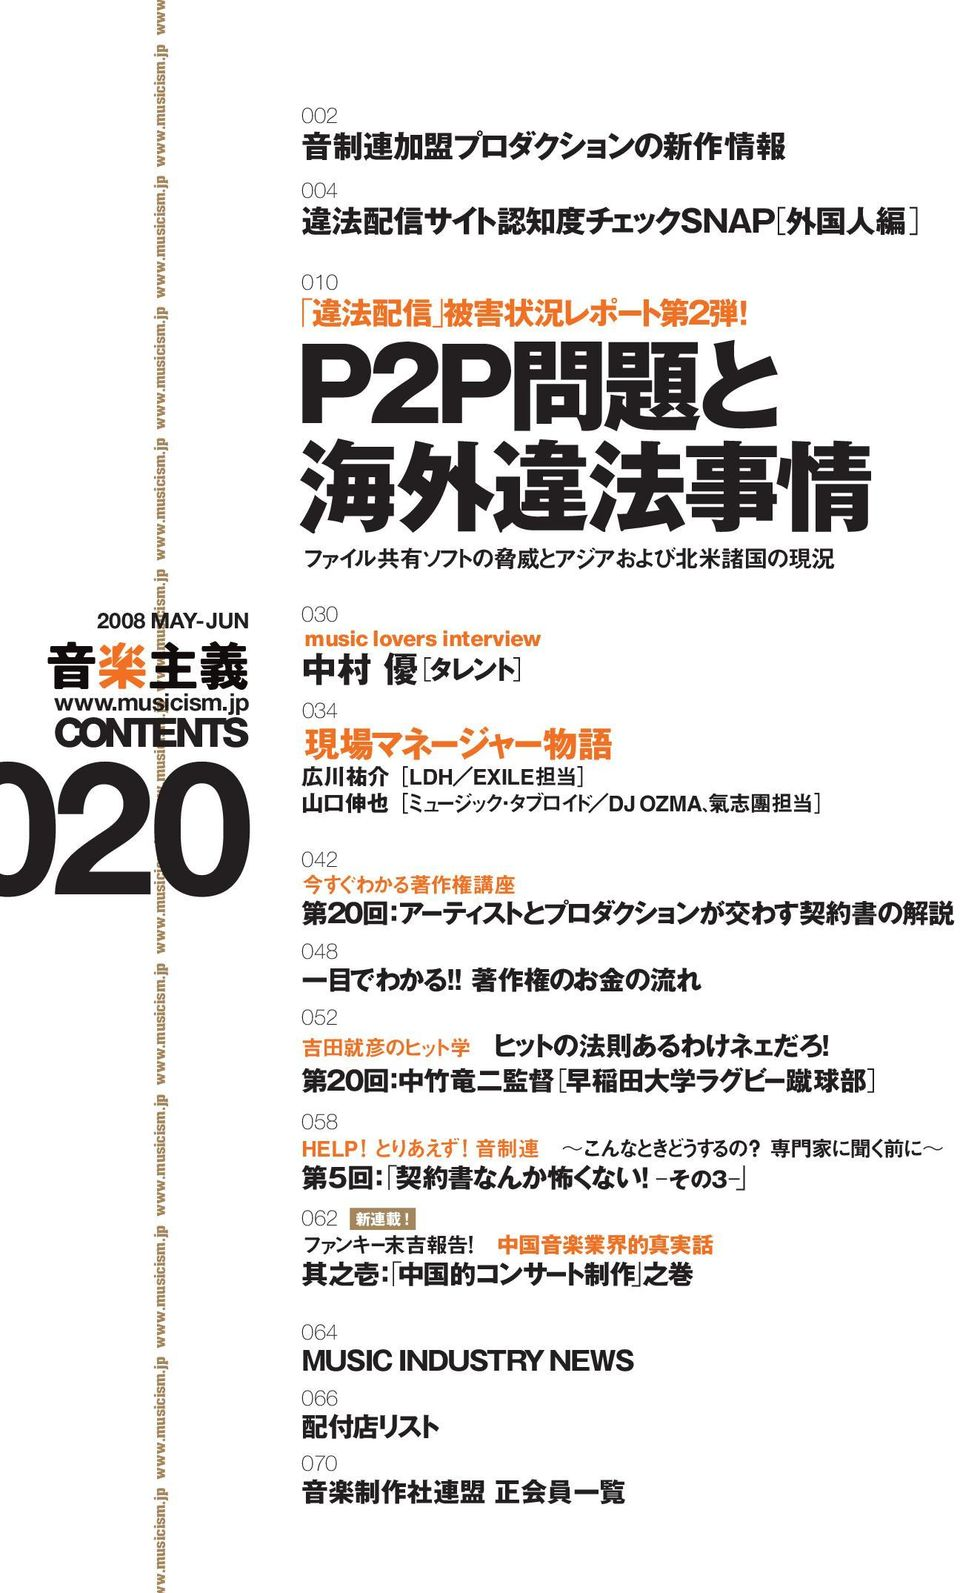 jp CONTENTS 20 002 004 010 030 music lovers interview 034 042 048 052 058 062